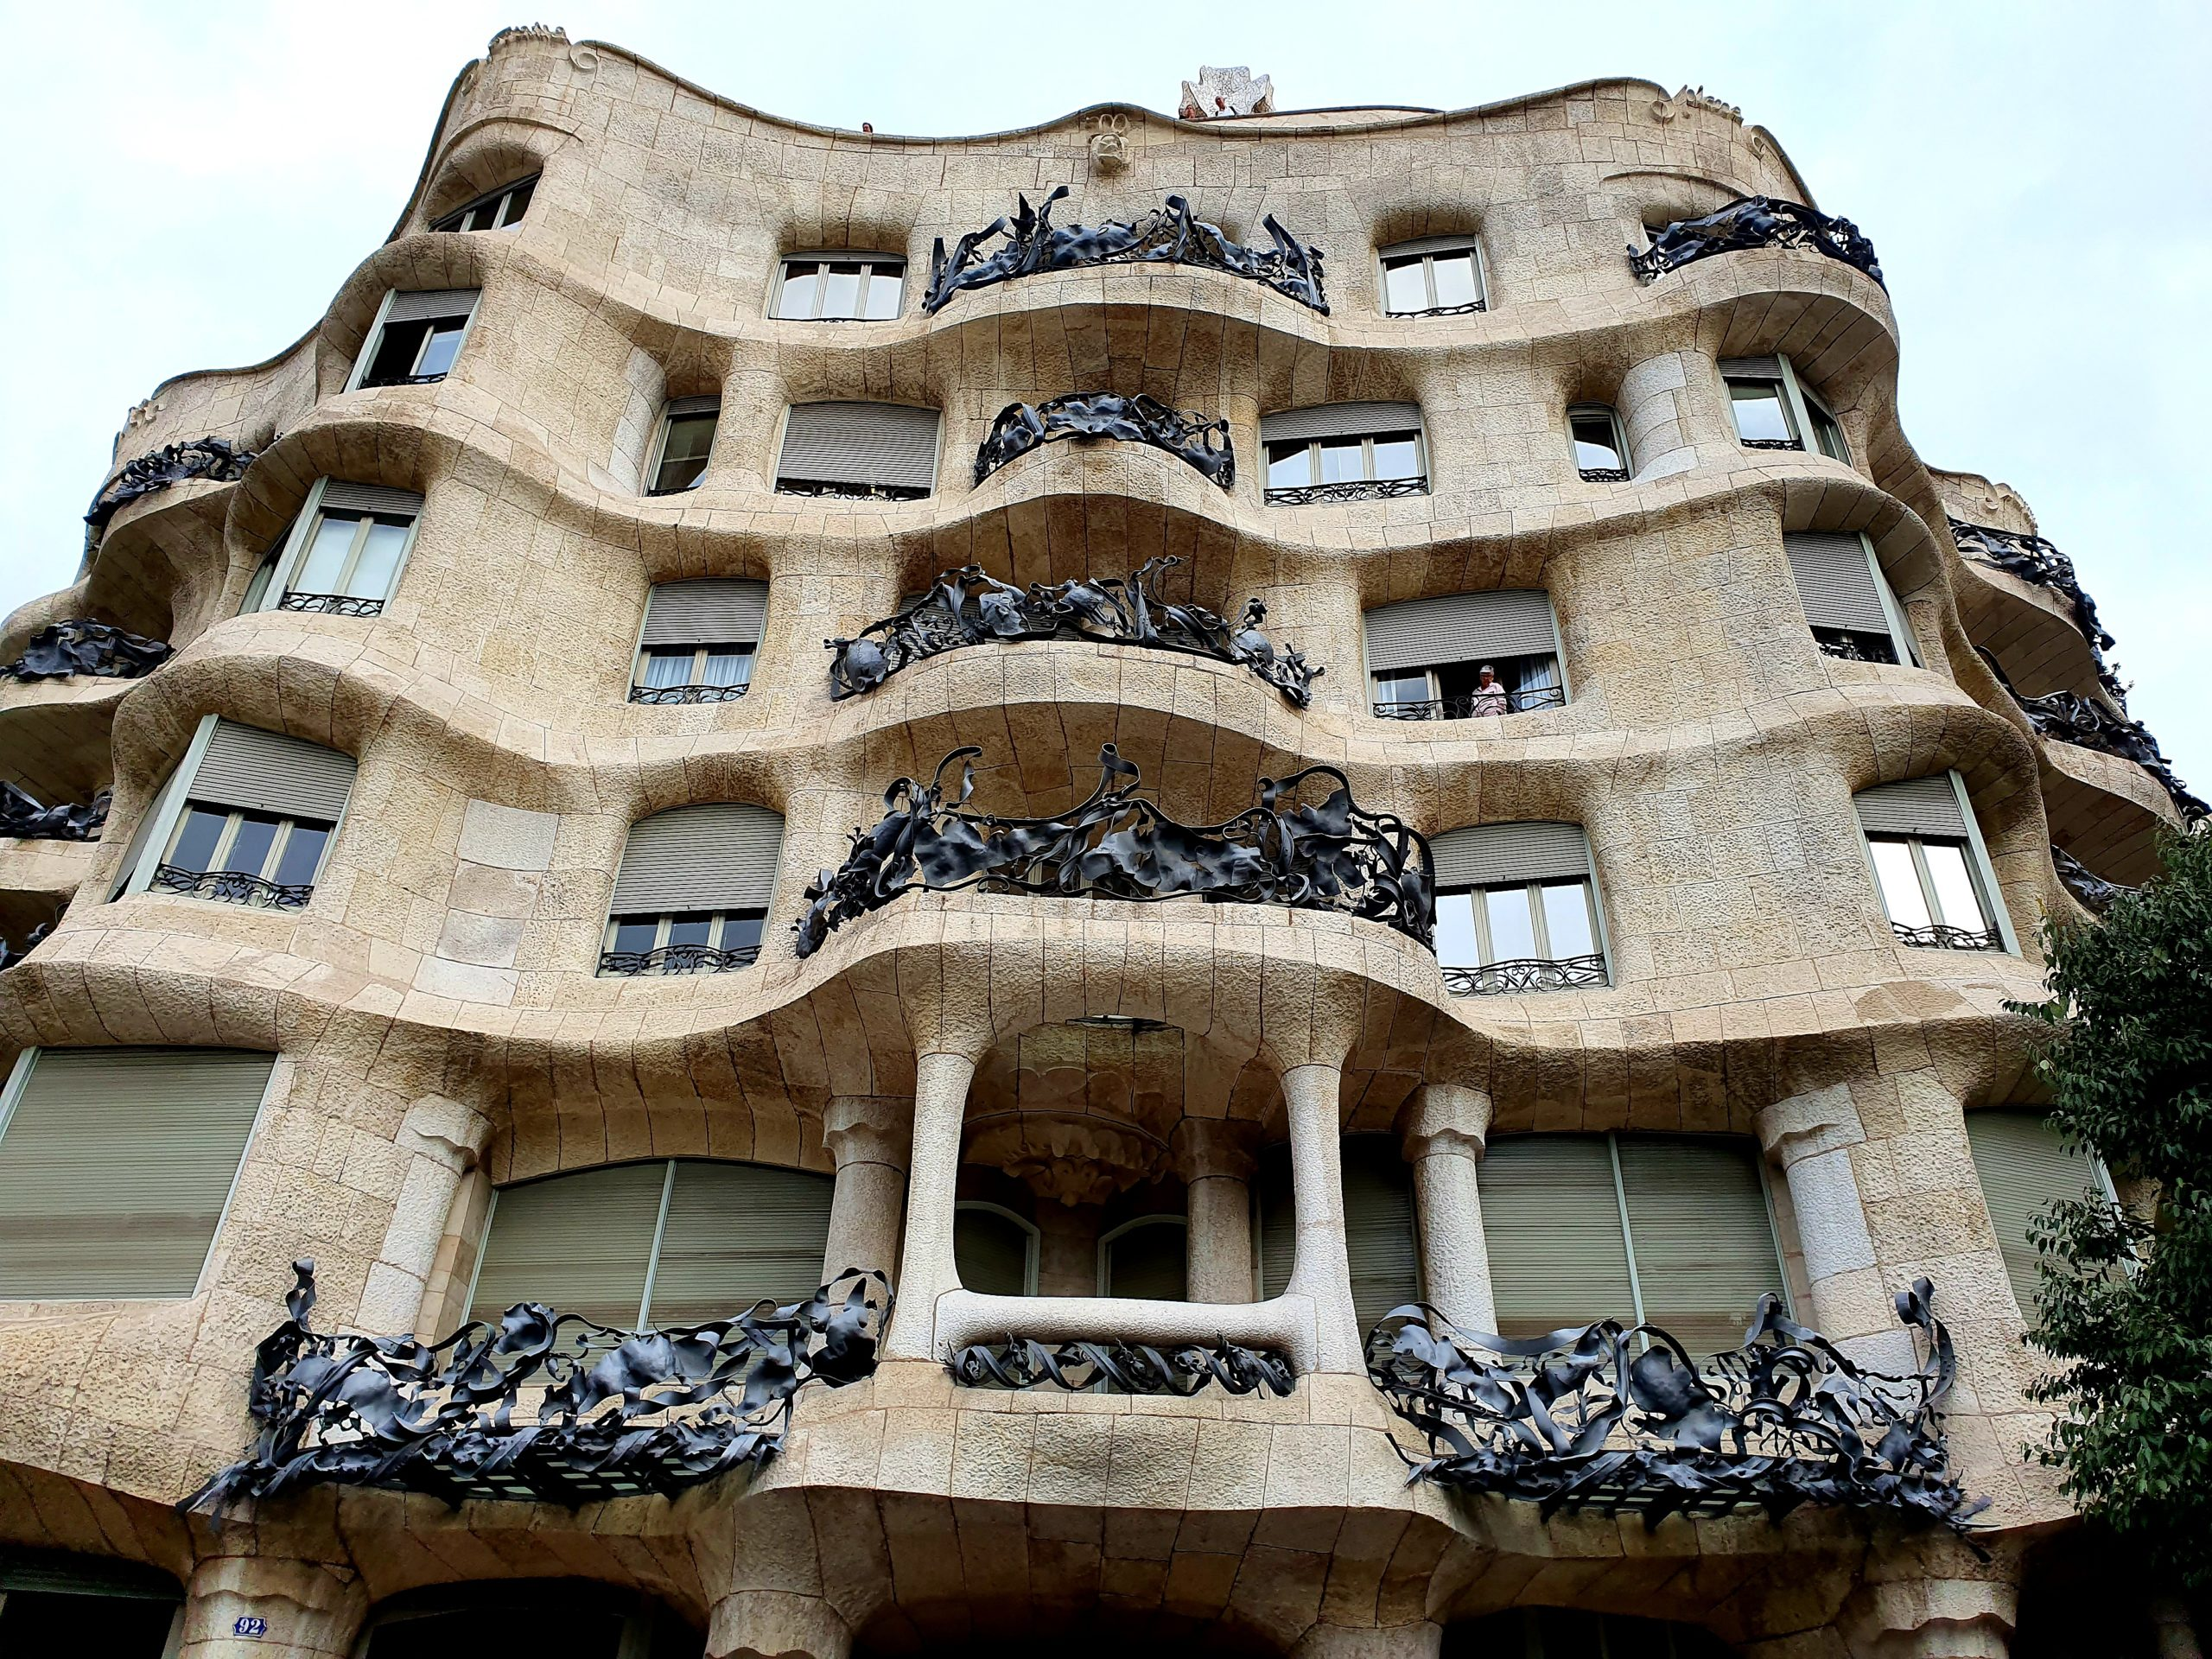 Casa Milà weekend in Barcelona